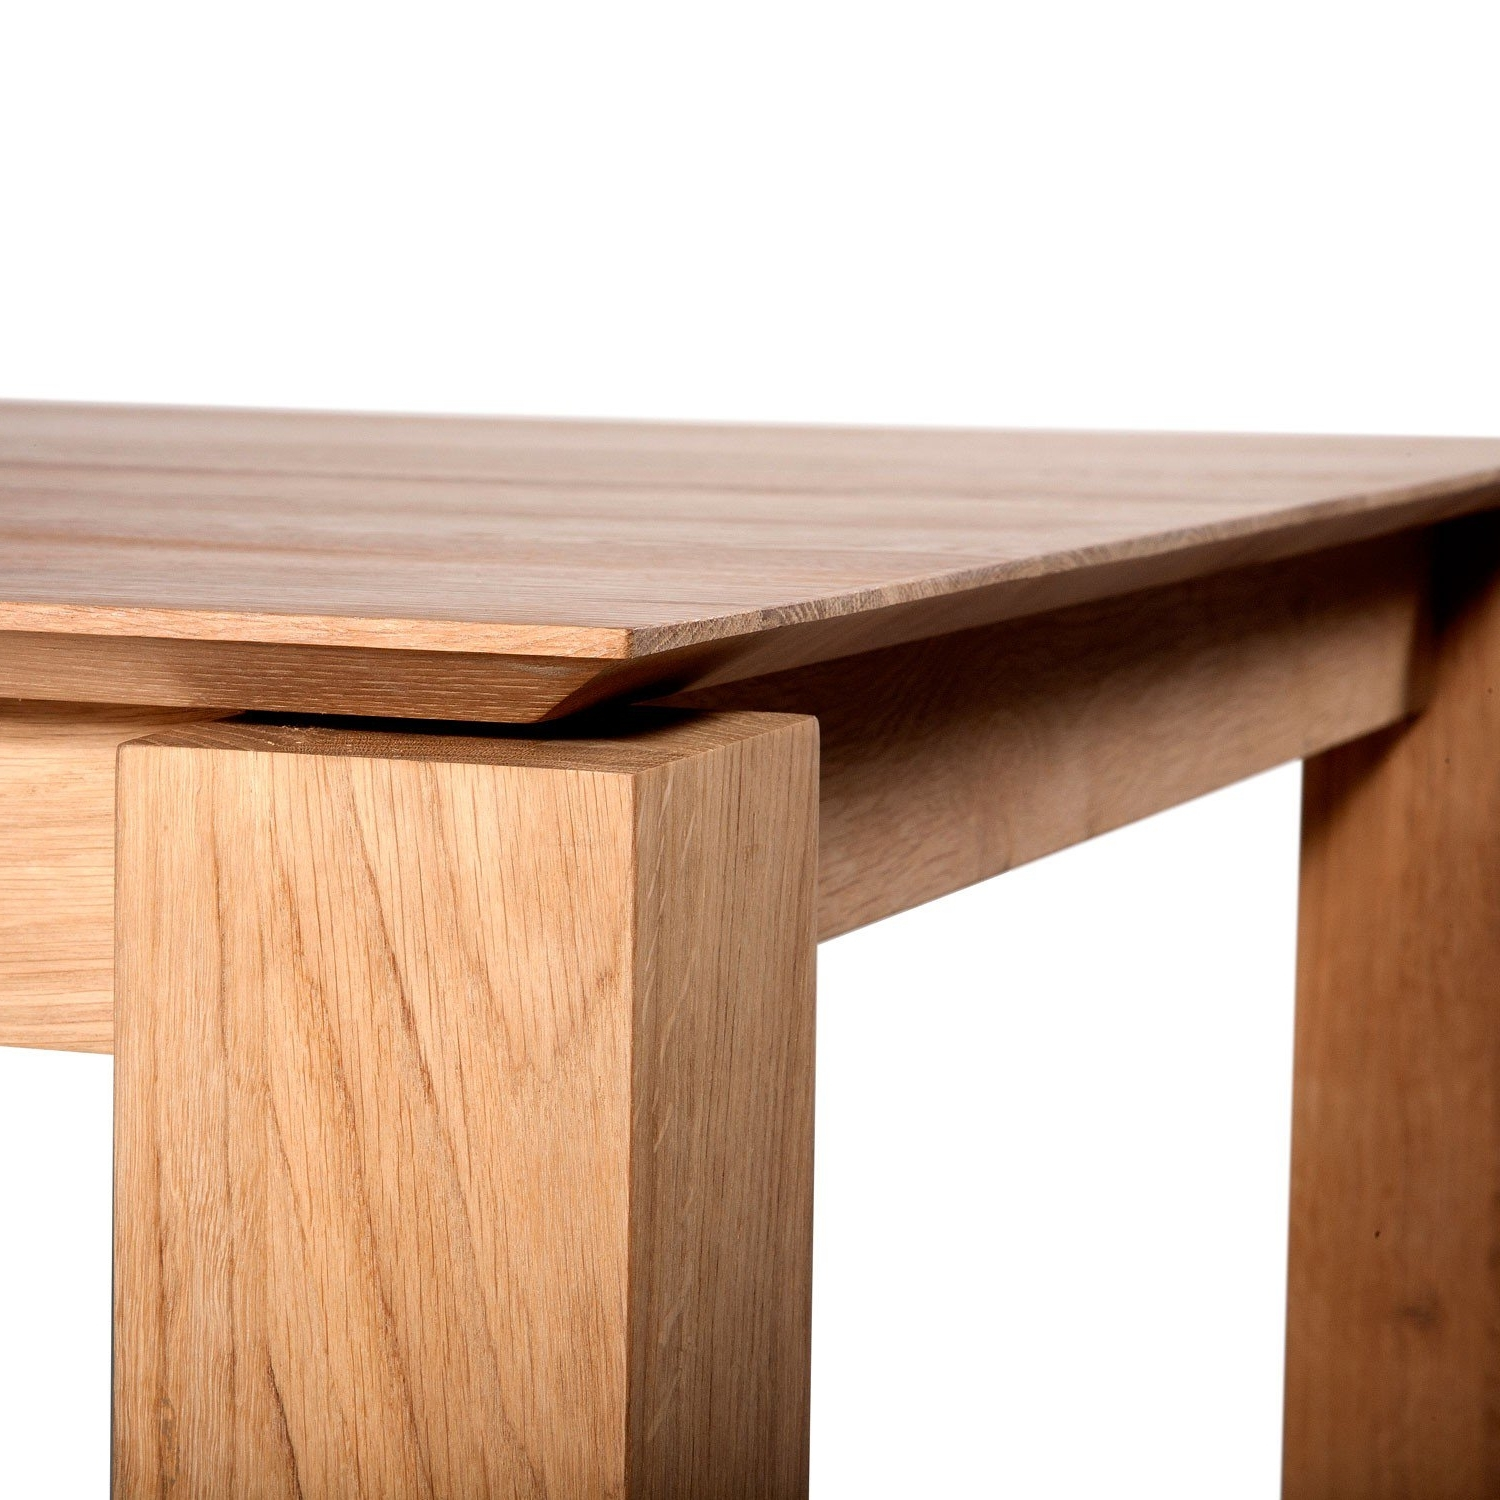 Ethnicraft Oak Slice Extending Dining Tables intended for Most Up-to-Date Cheap Oak Dining Tables